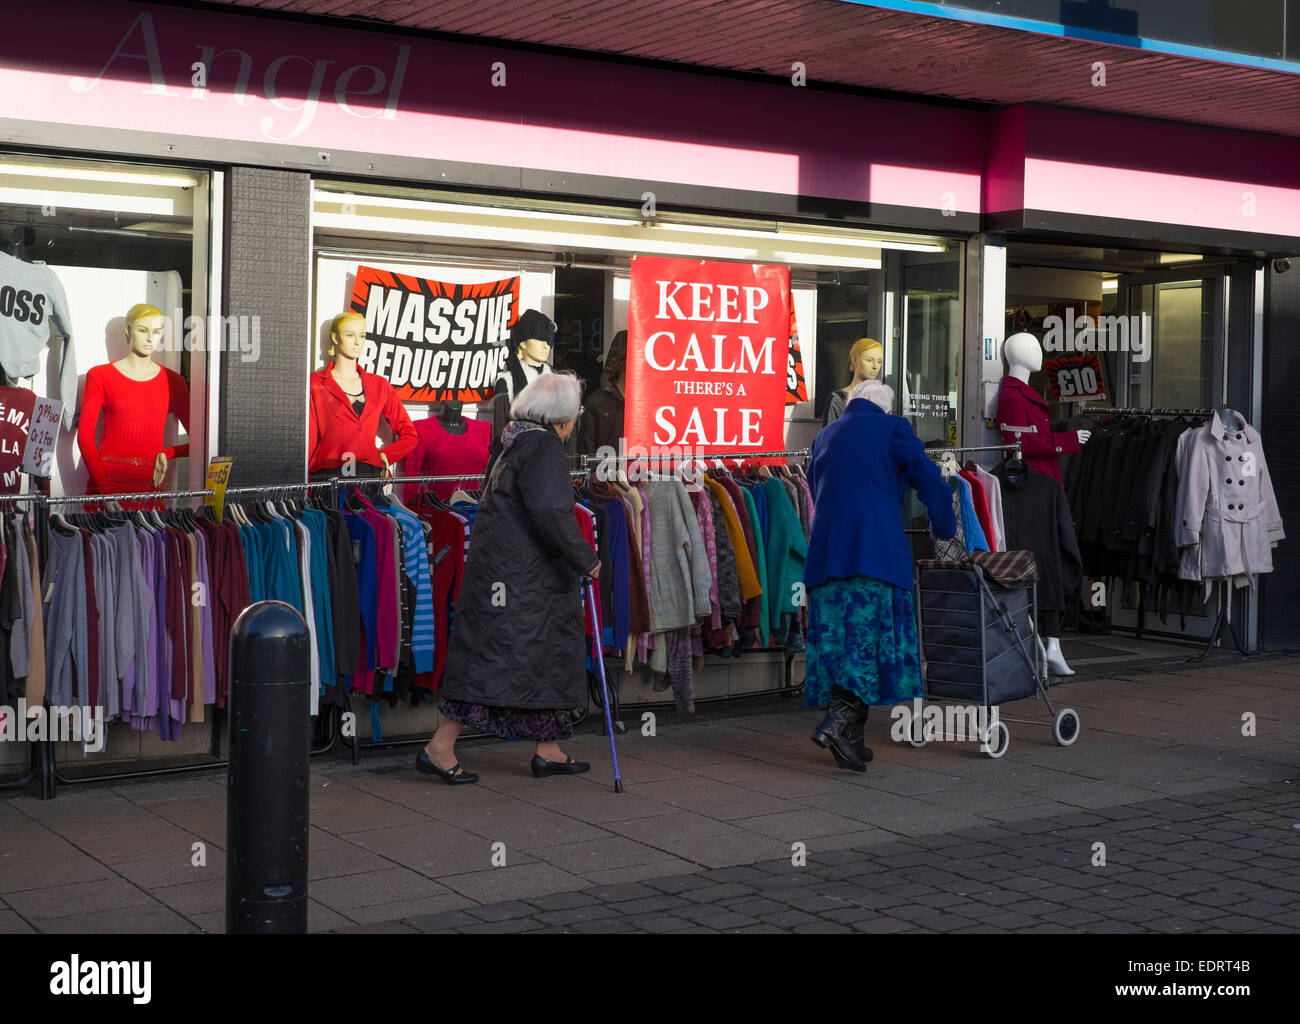 Two elderly women walk past a clothing shop with sale signs, Walsall, West Midlands, England. - Stock Image